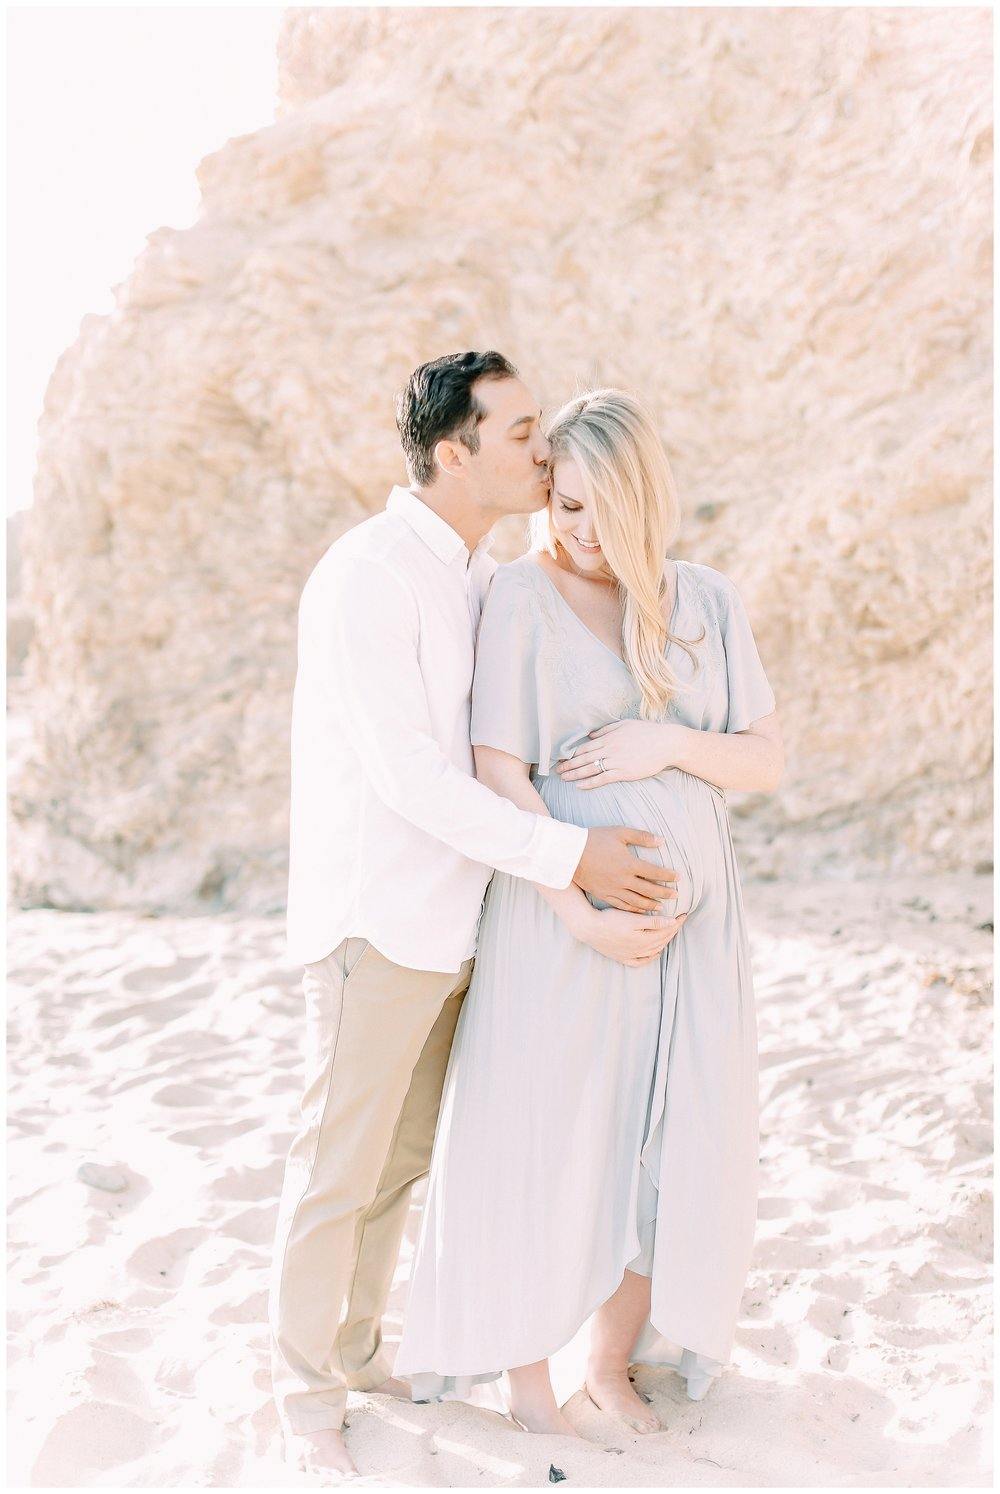 Little_Corona_Beach_Maternity_Session_Orange_county_family_photographer_cori_kleckner_photography_laguna_beach_family_session_0729.jpg